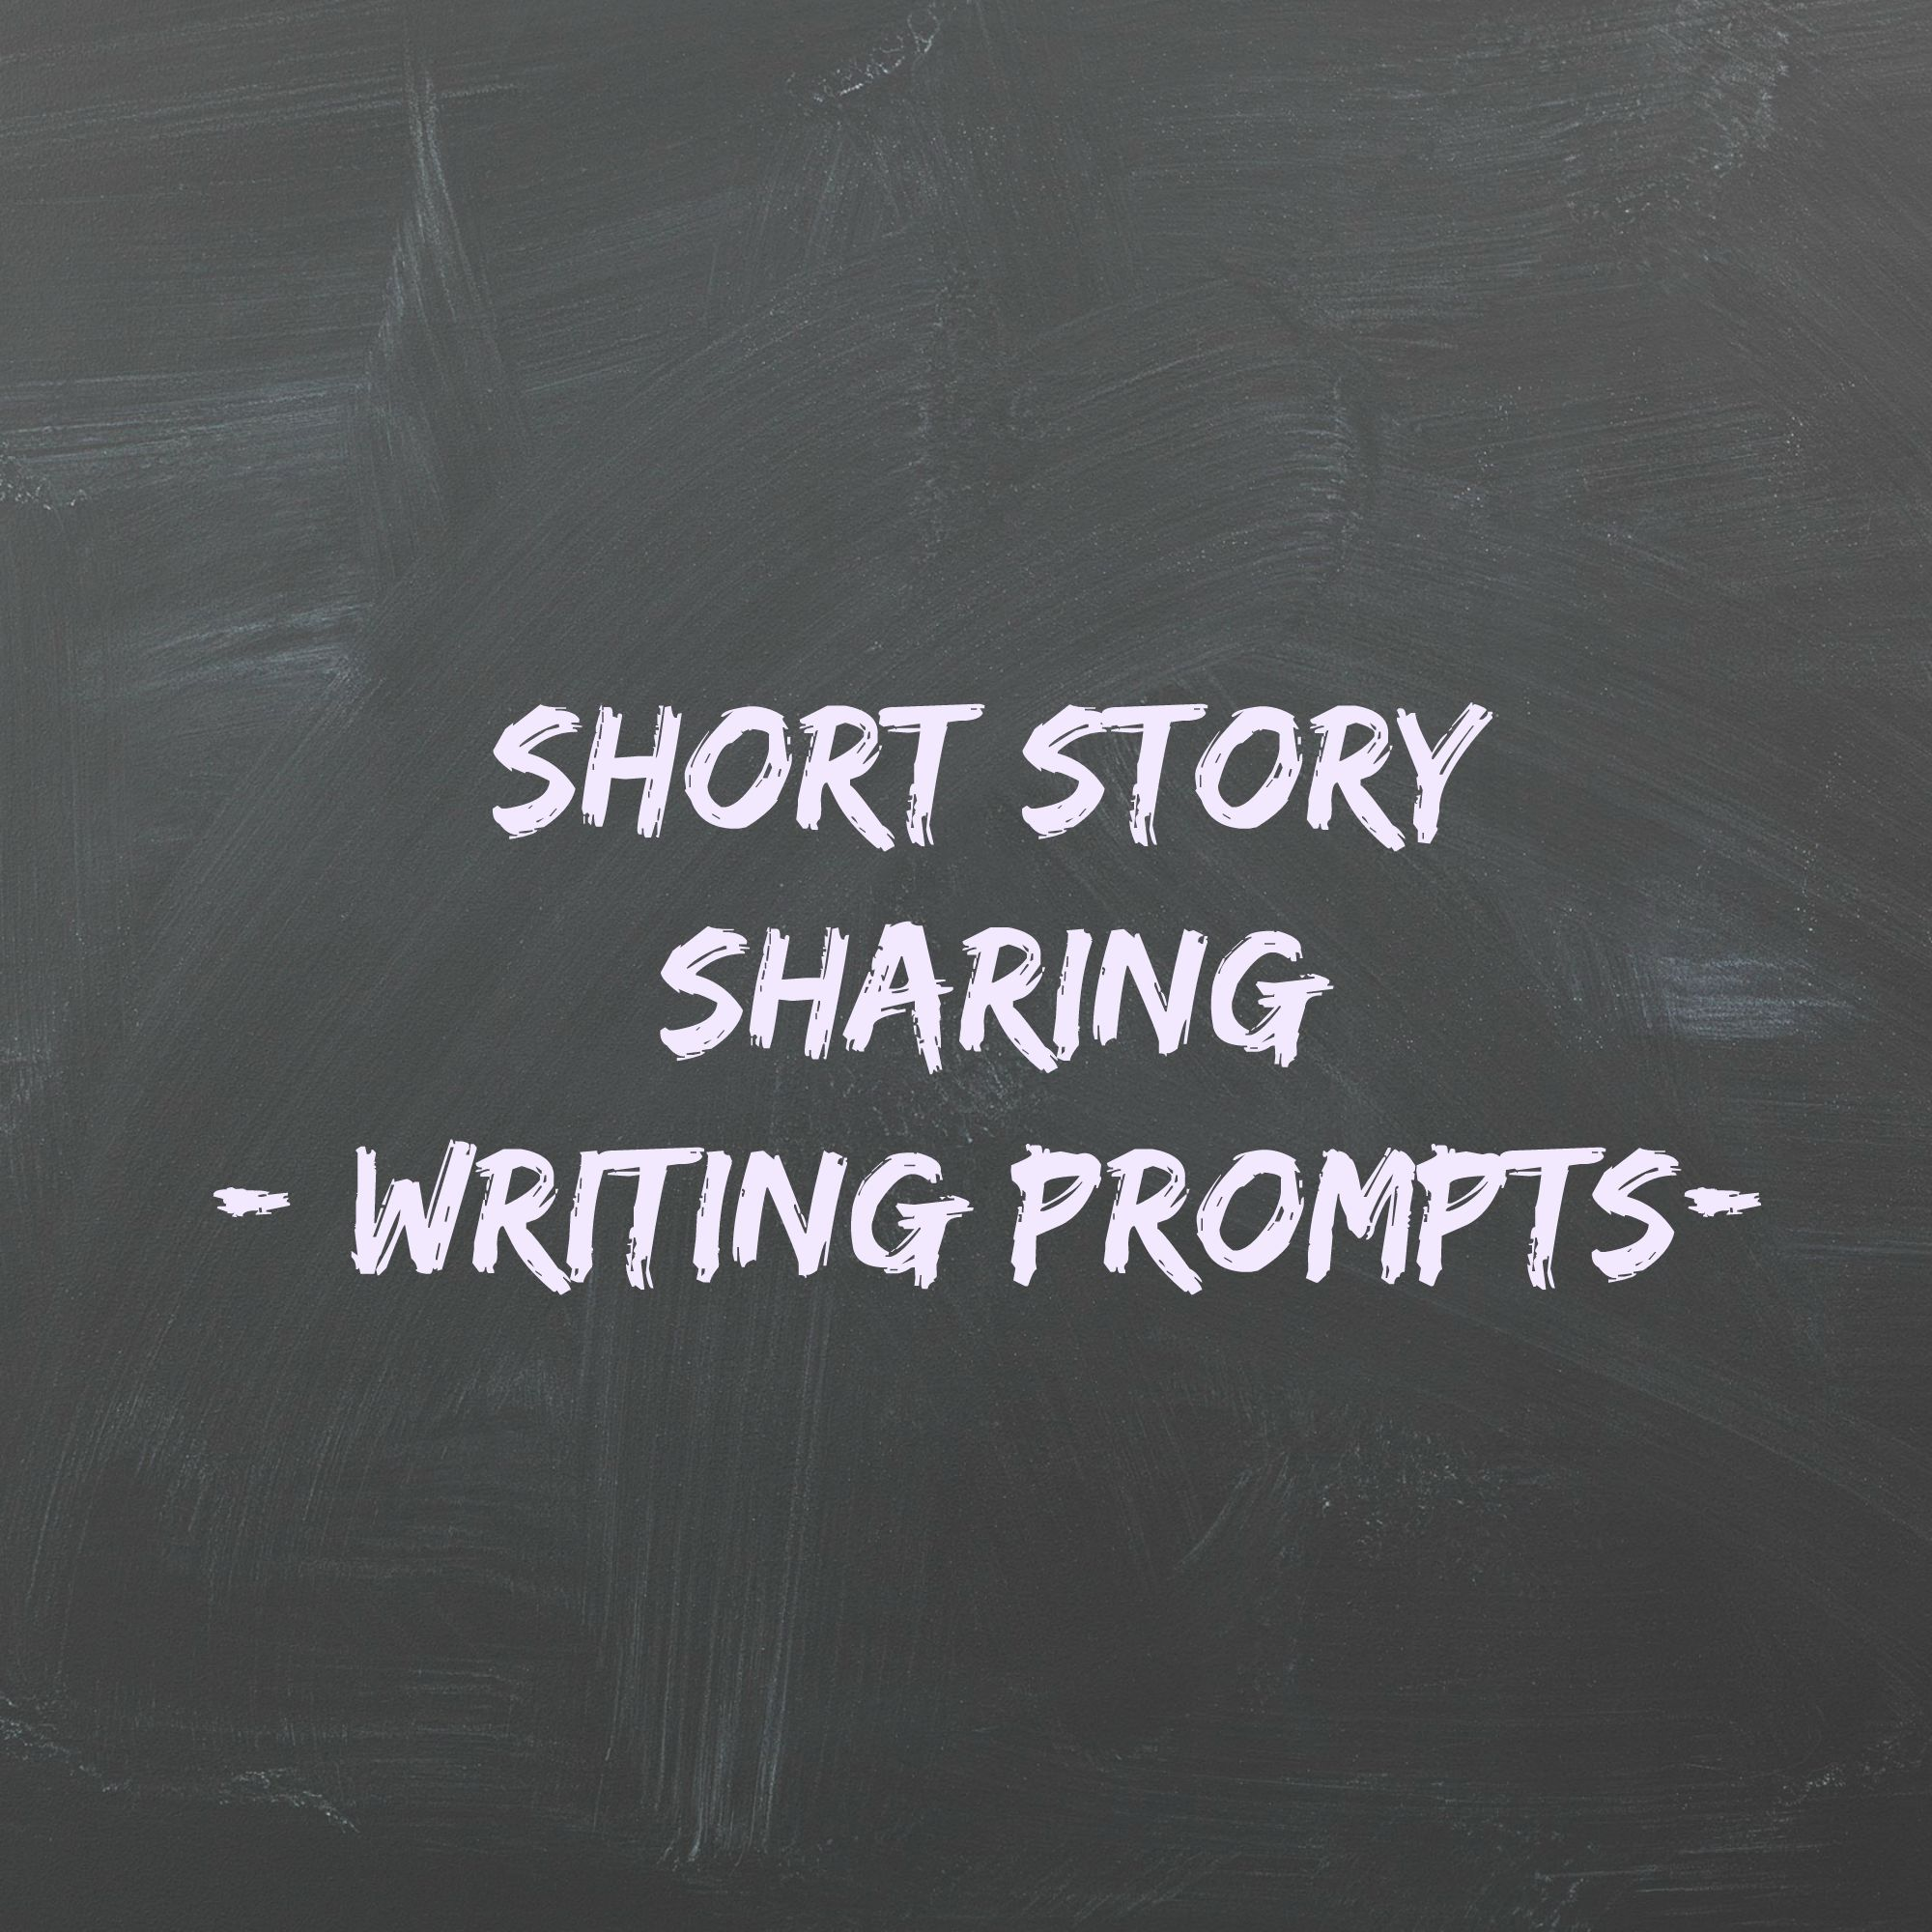 Short Story Sharing Writing Prompts